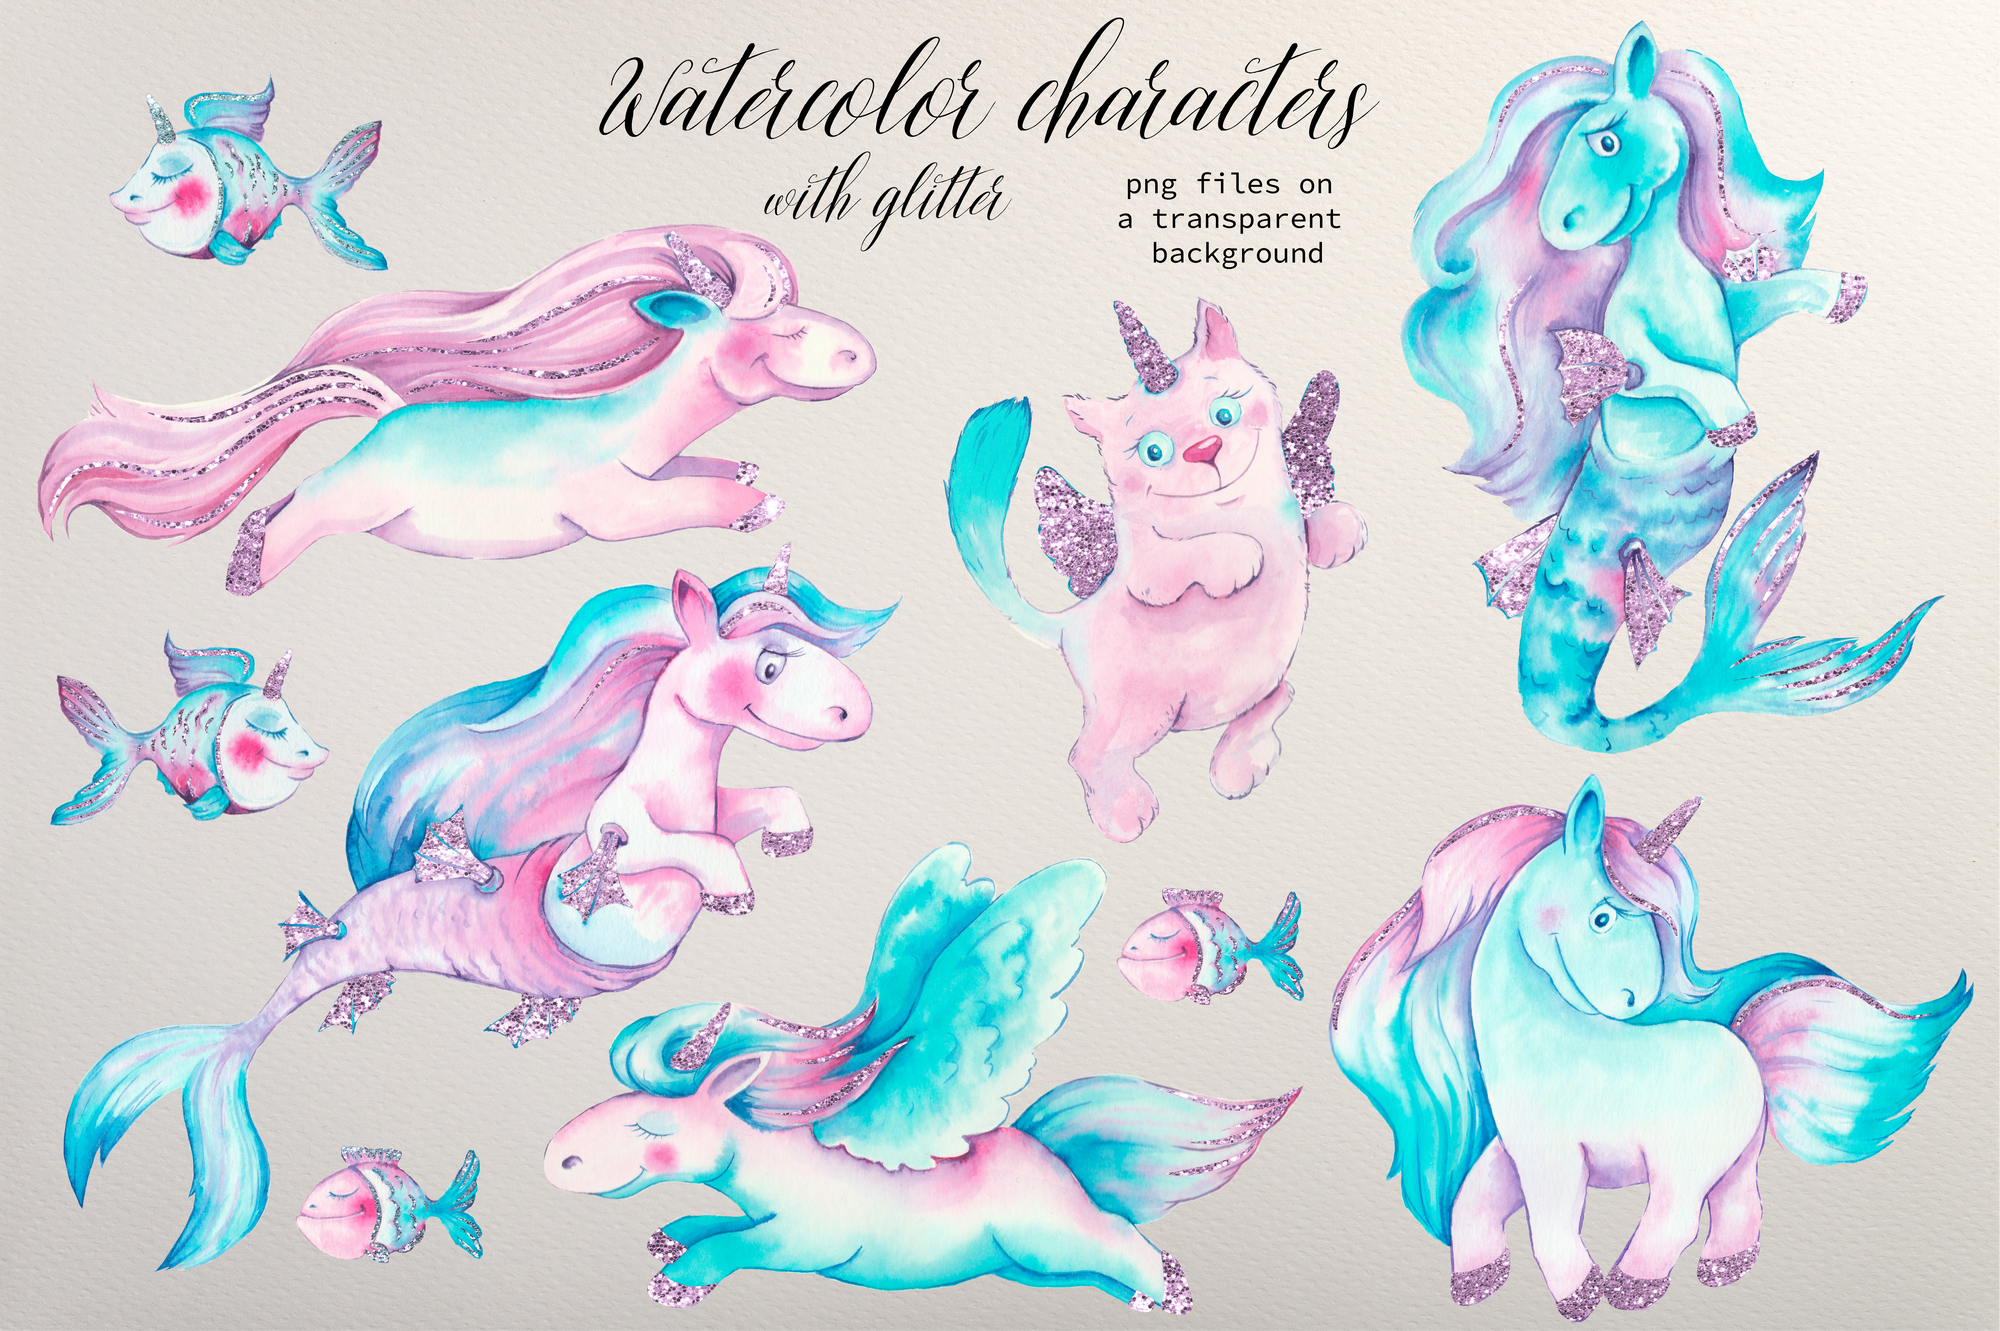 Unicorn Vectors: Patterns, Characters and Items - $18 - Image00006